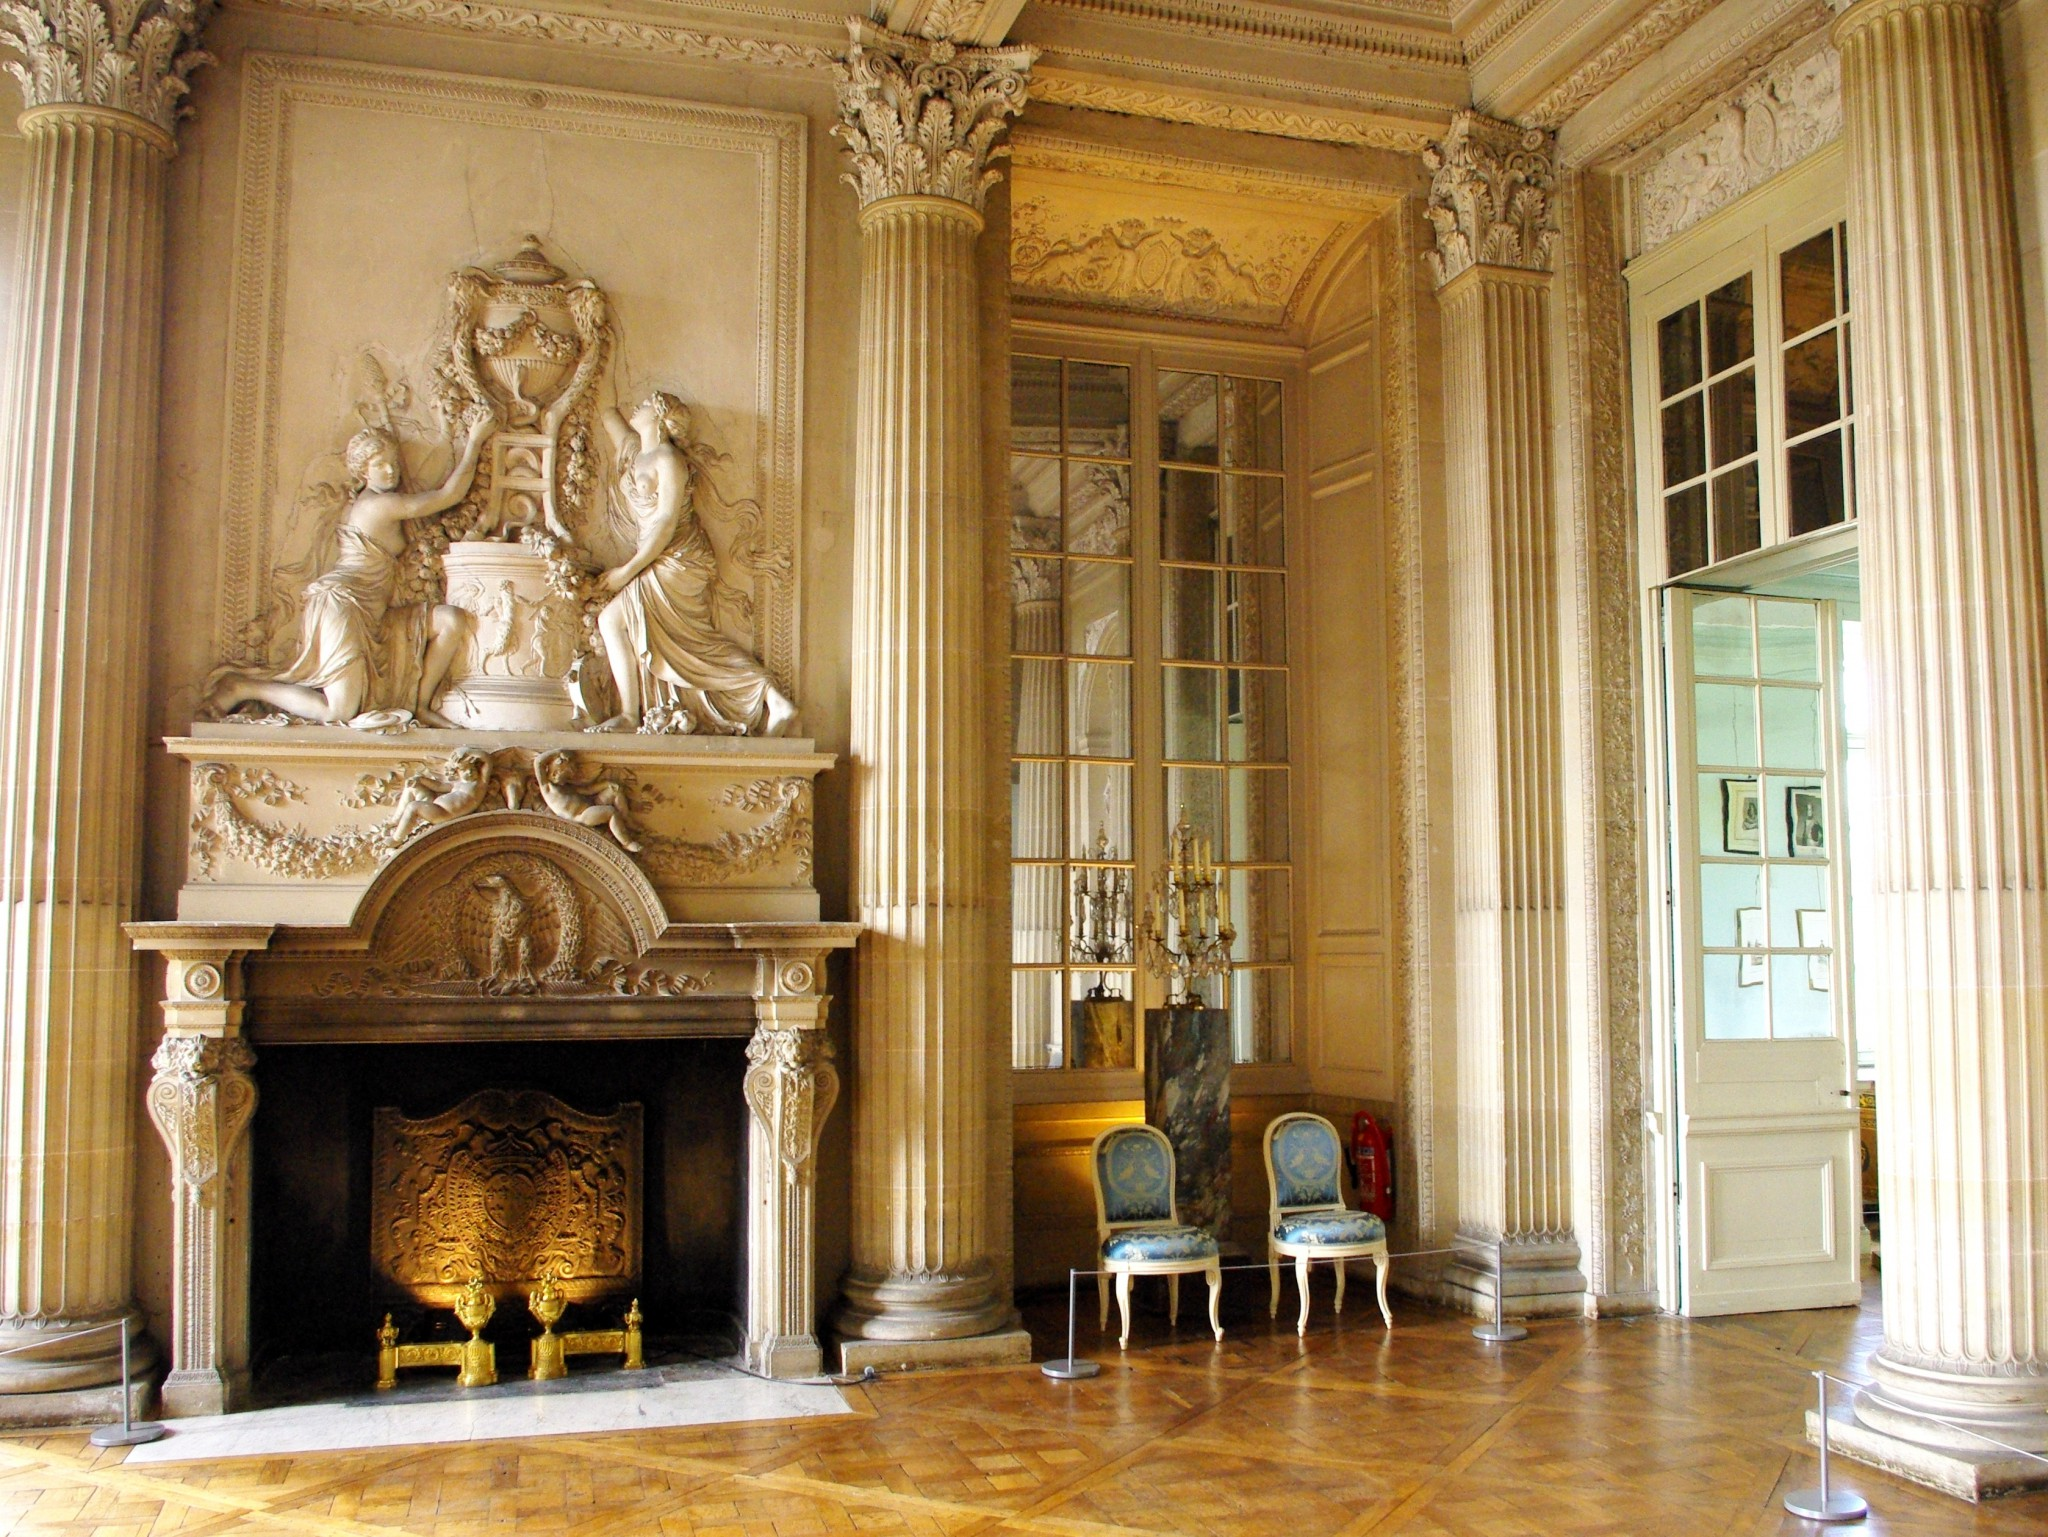 Inside the chateau of Maisons-Laffitte © French Moments